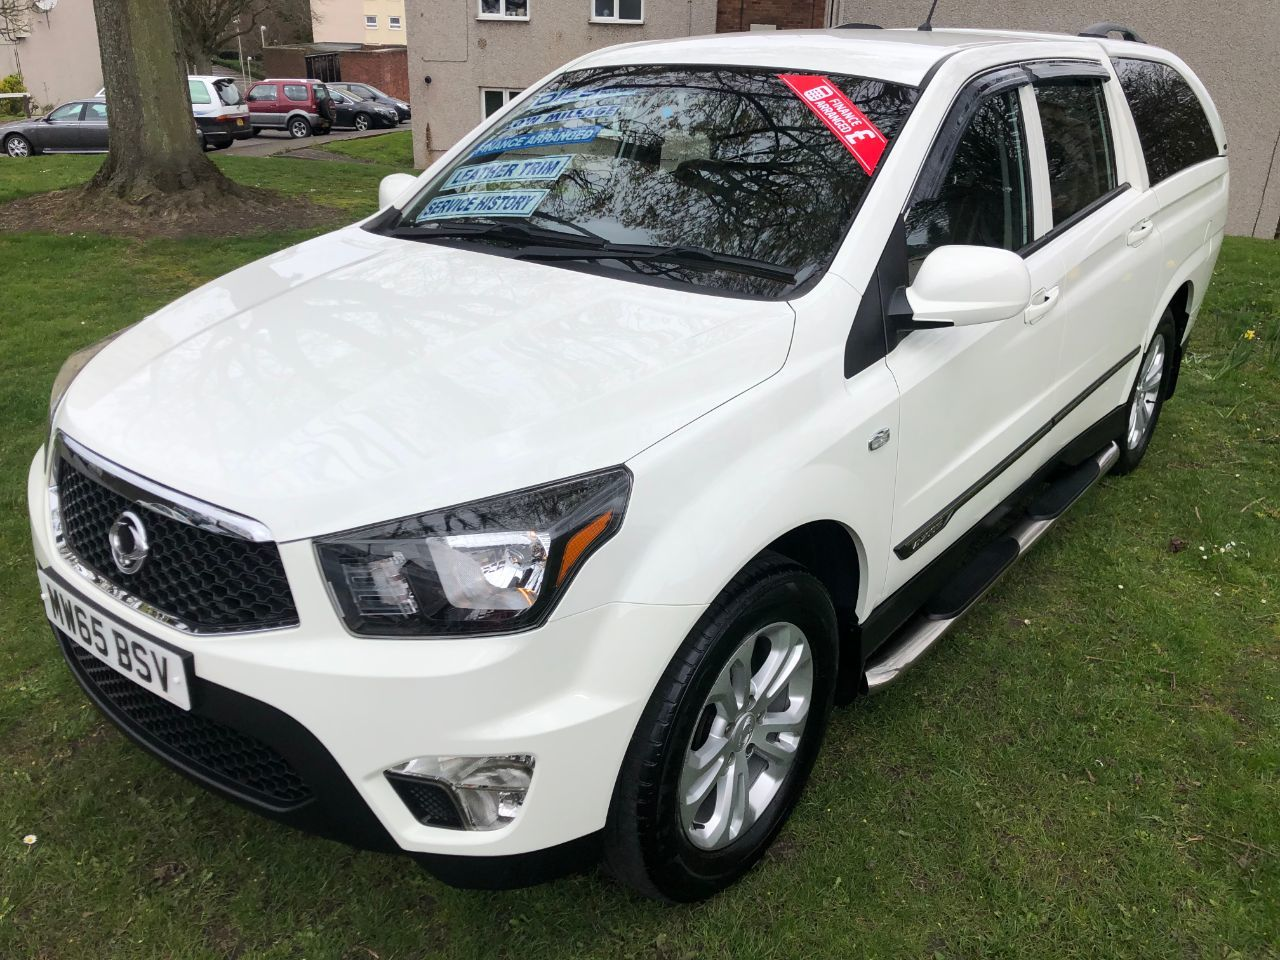 SsangYong Korando Sports 2.0 Double Cab Pick Up EX 5dr 4WD *ONLY 27k MILES* Pick Up Diesel White